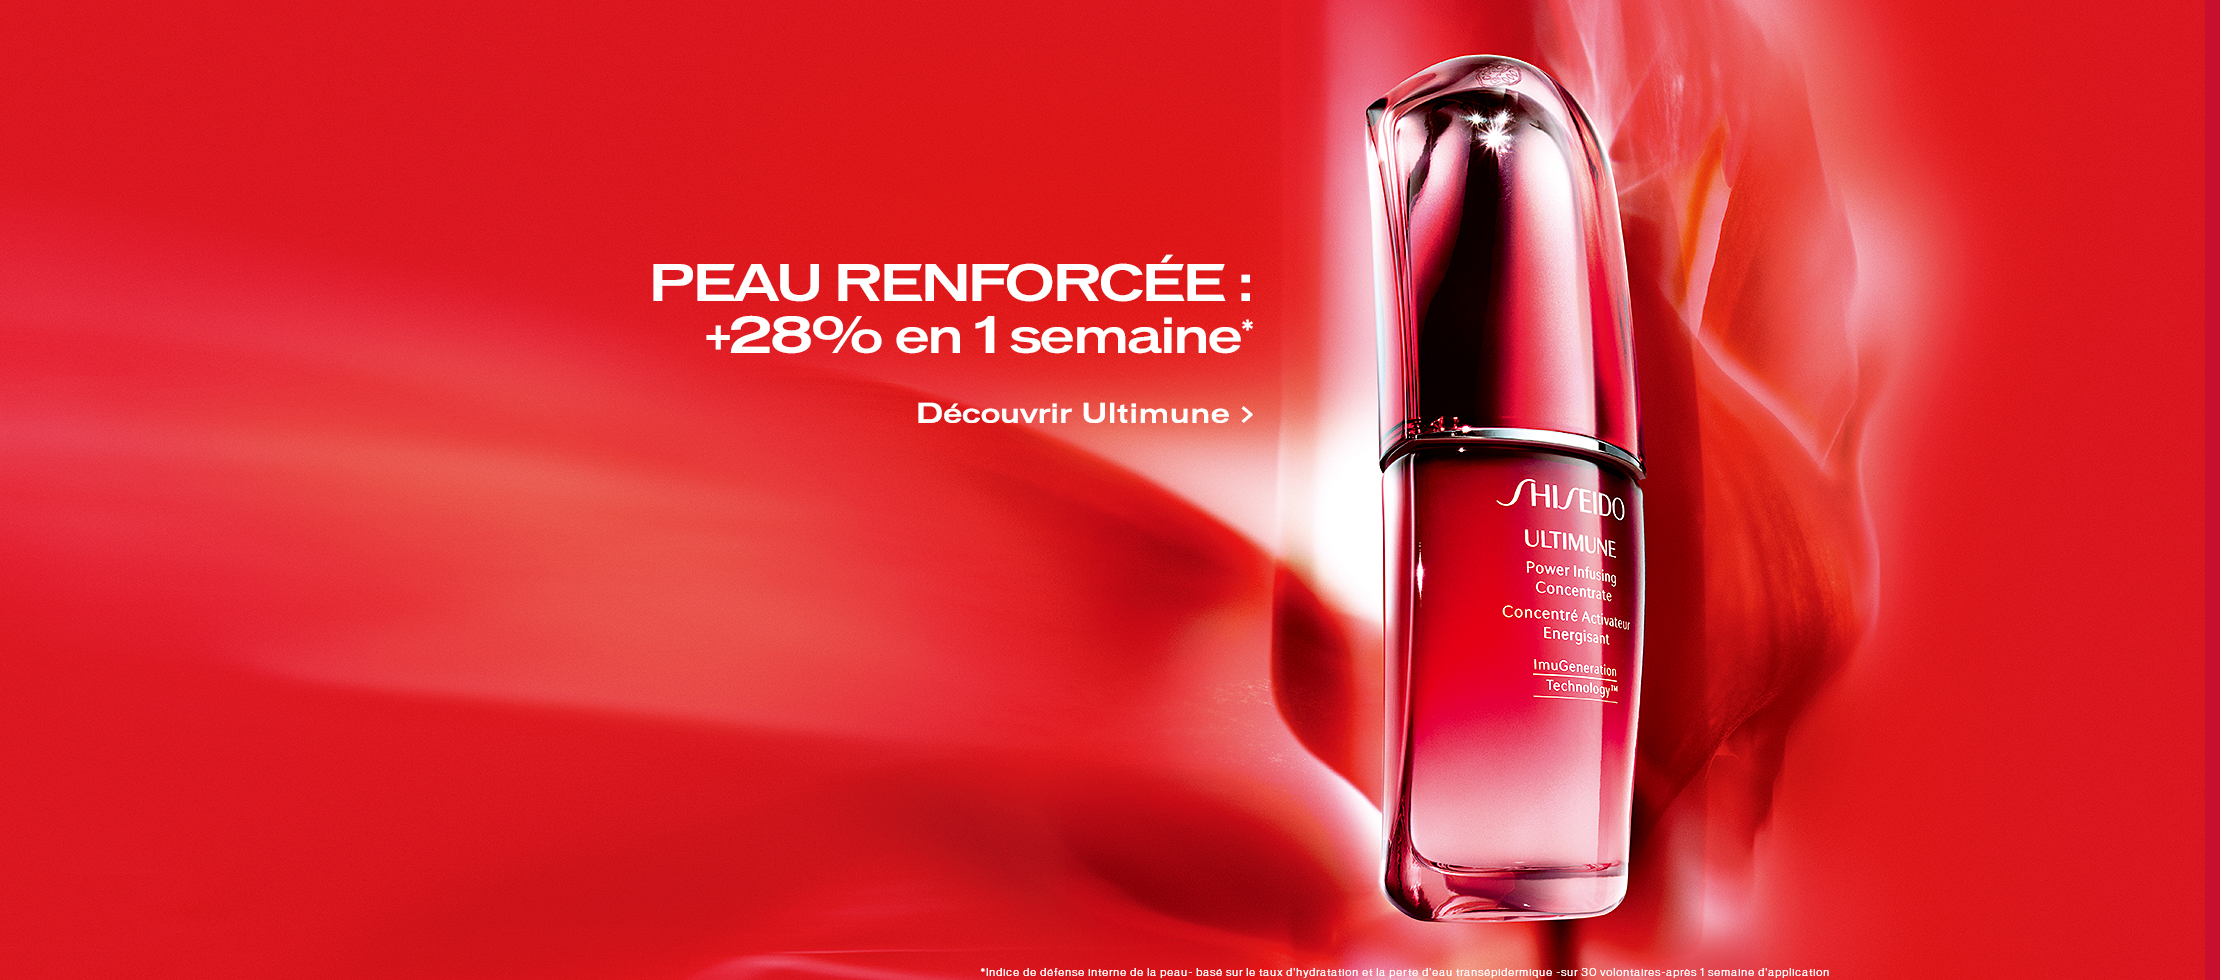 New Ultimune